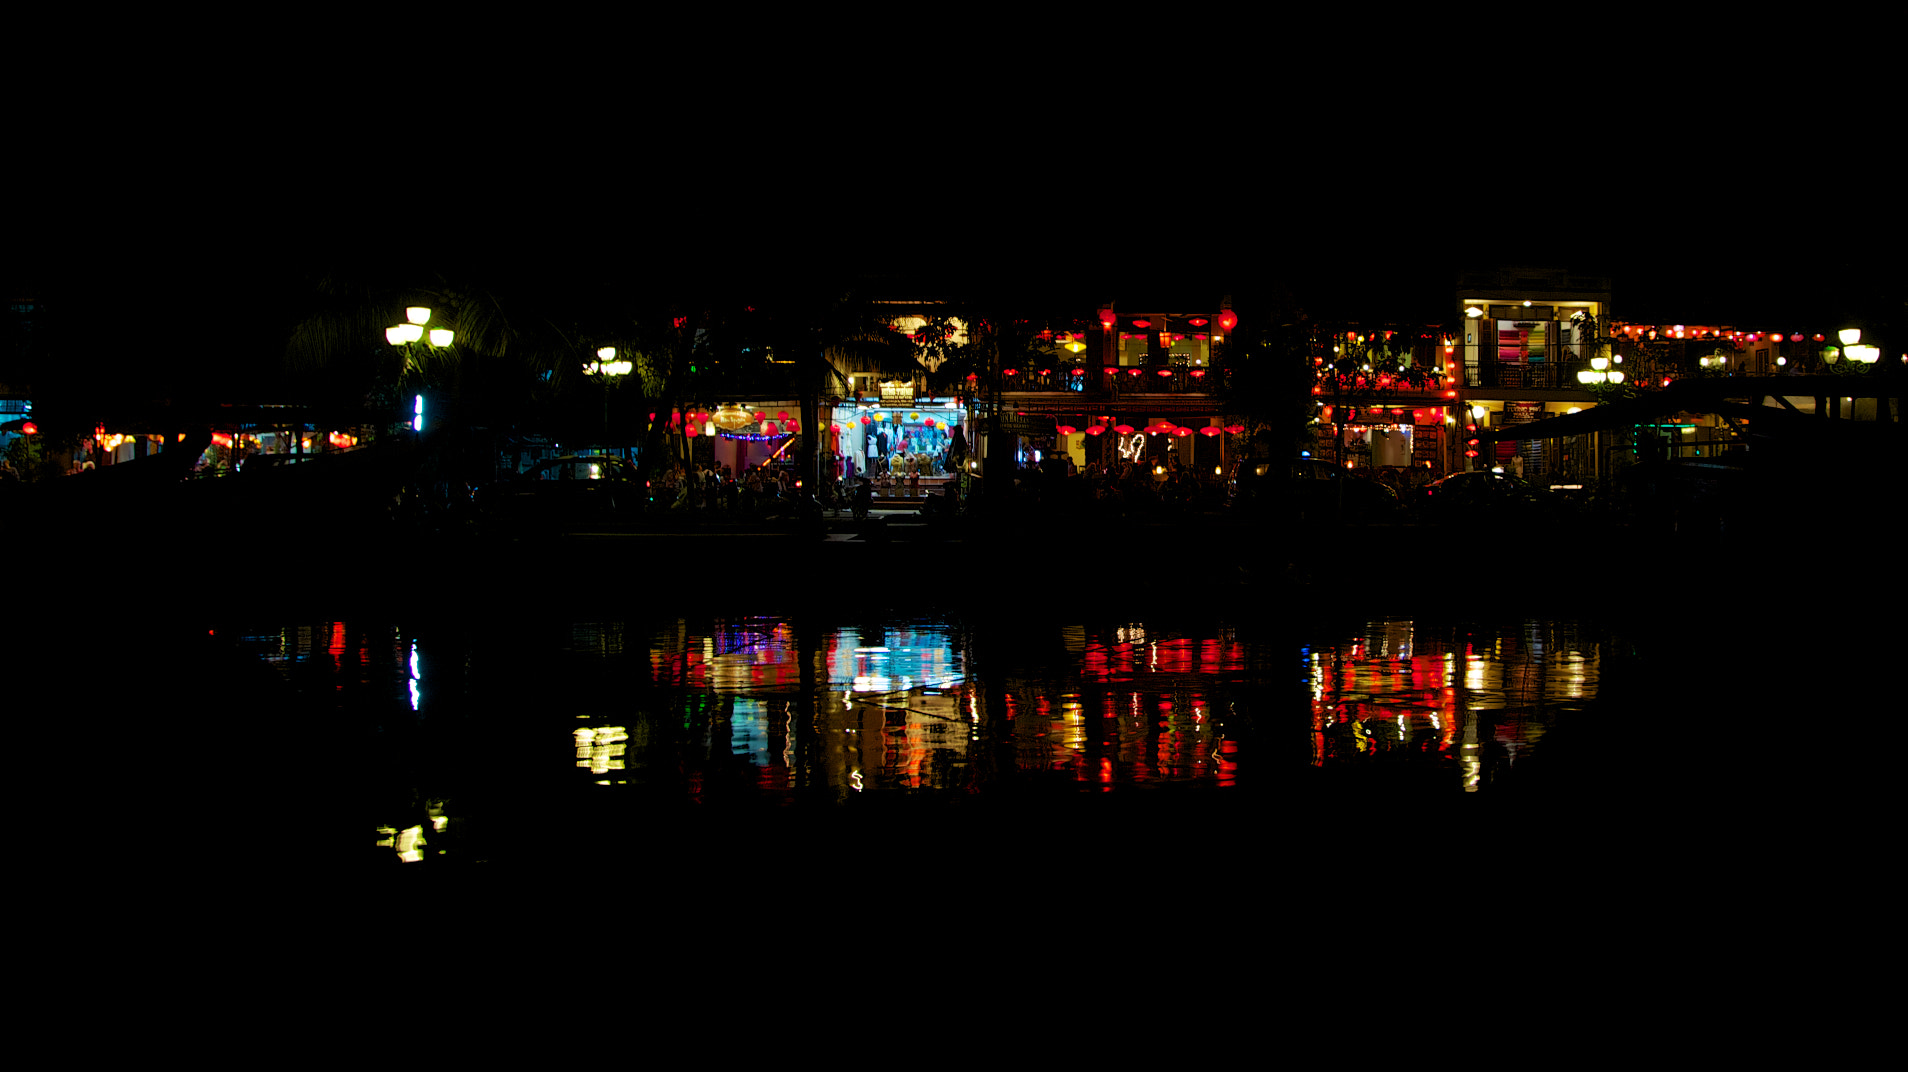 Photograph Hoi An lights by Dominic Meinardi on 500px